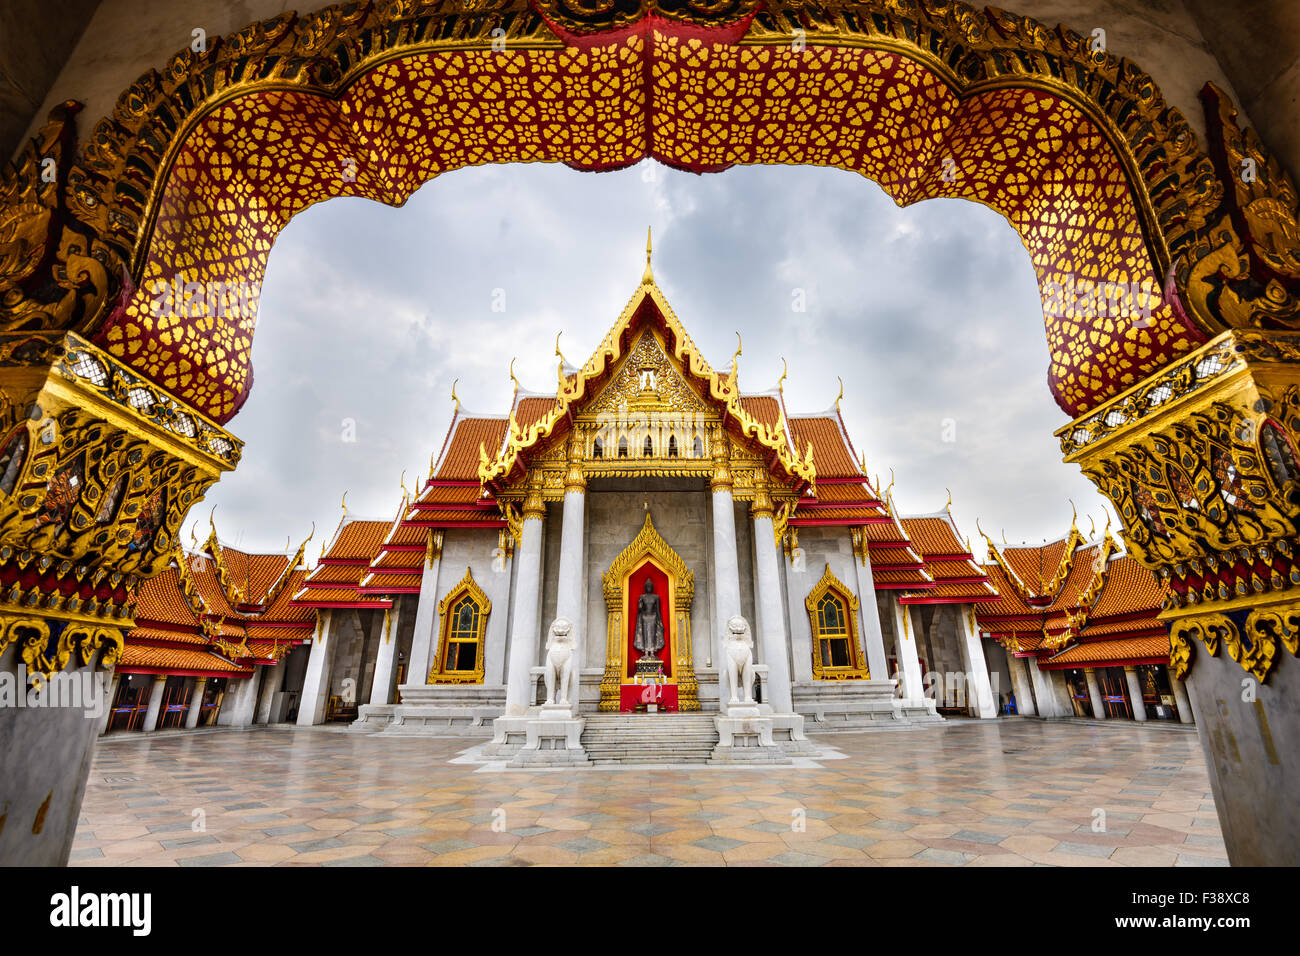 Wat Benchamabophit, the Marble Temple, in Bangkok, Thailand. - Stock Image